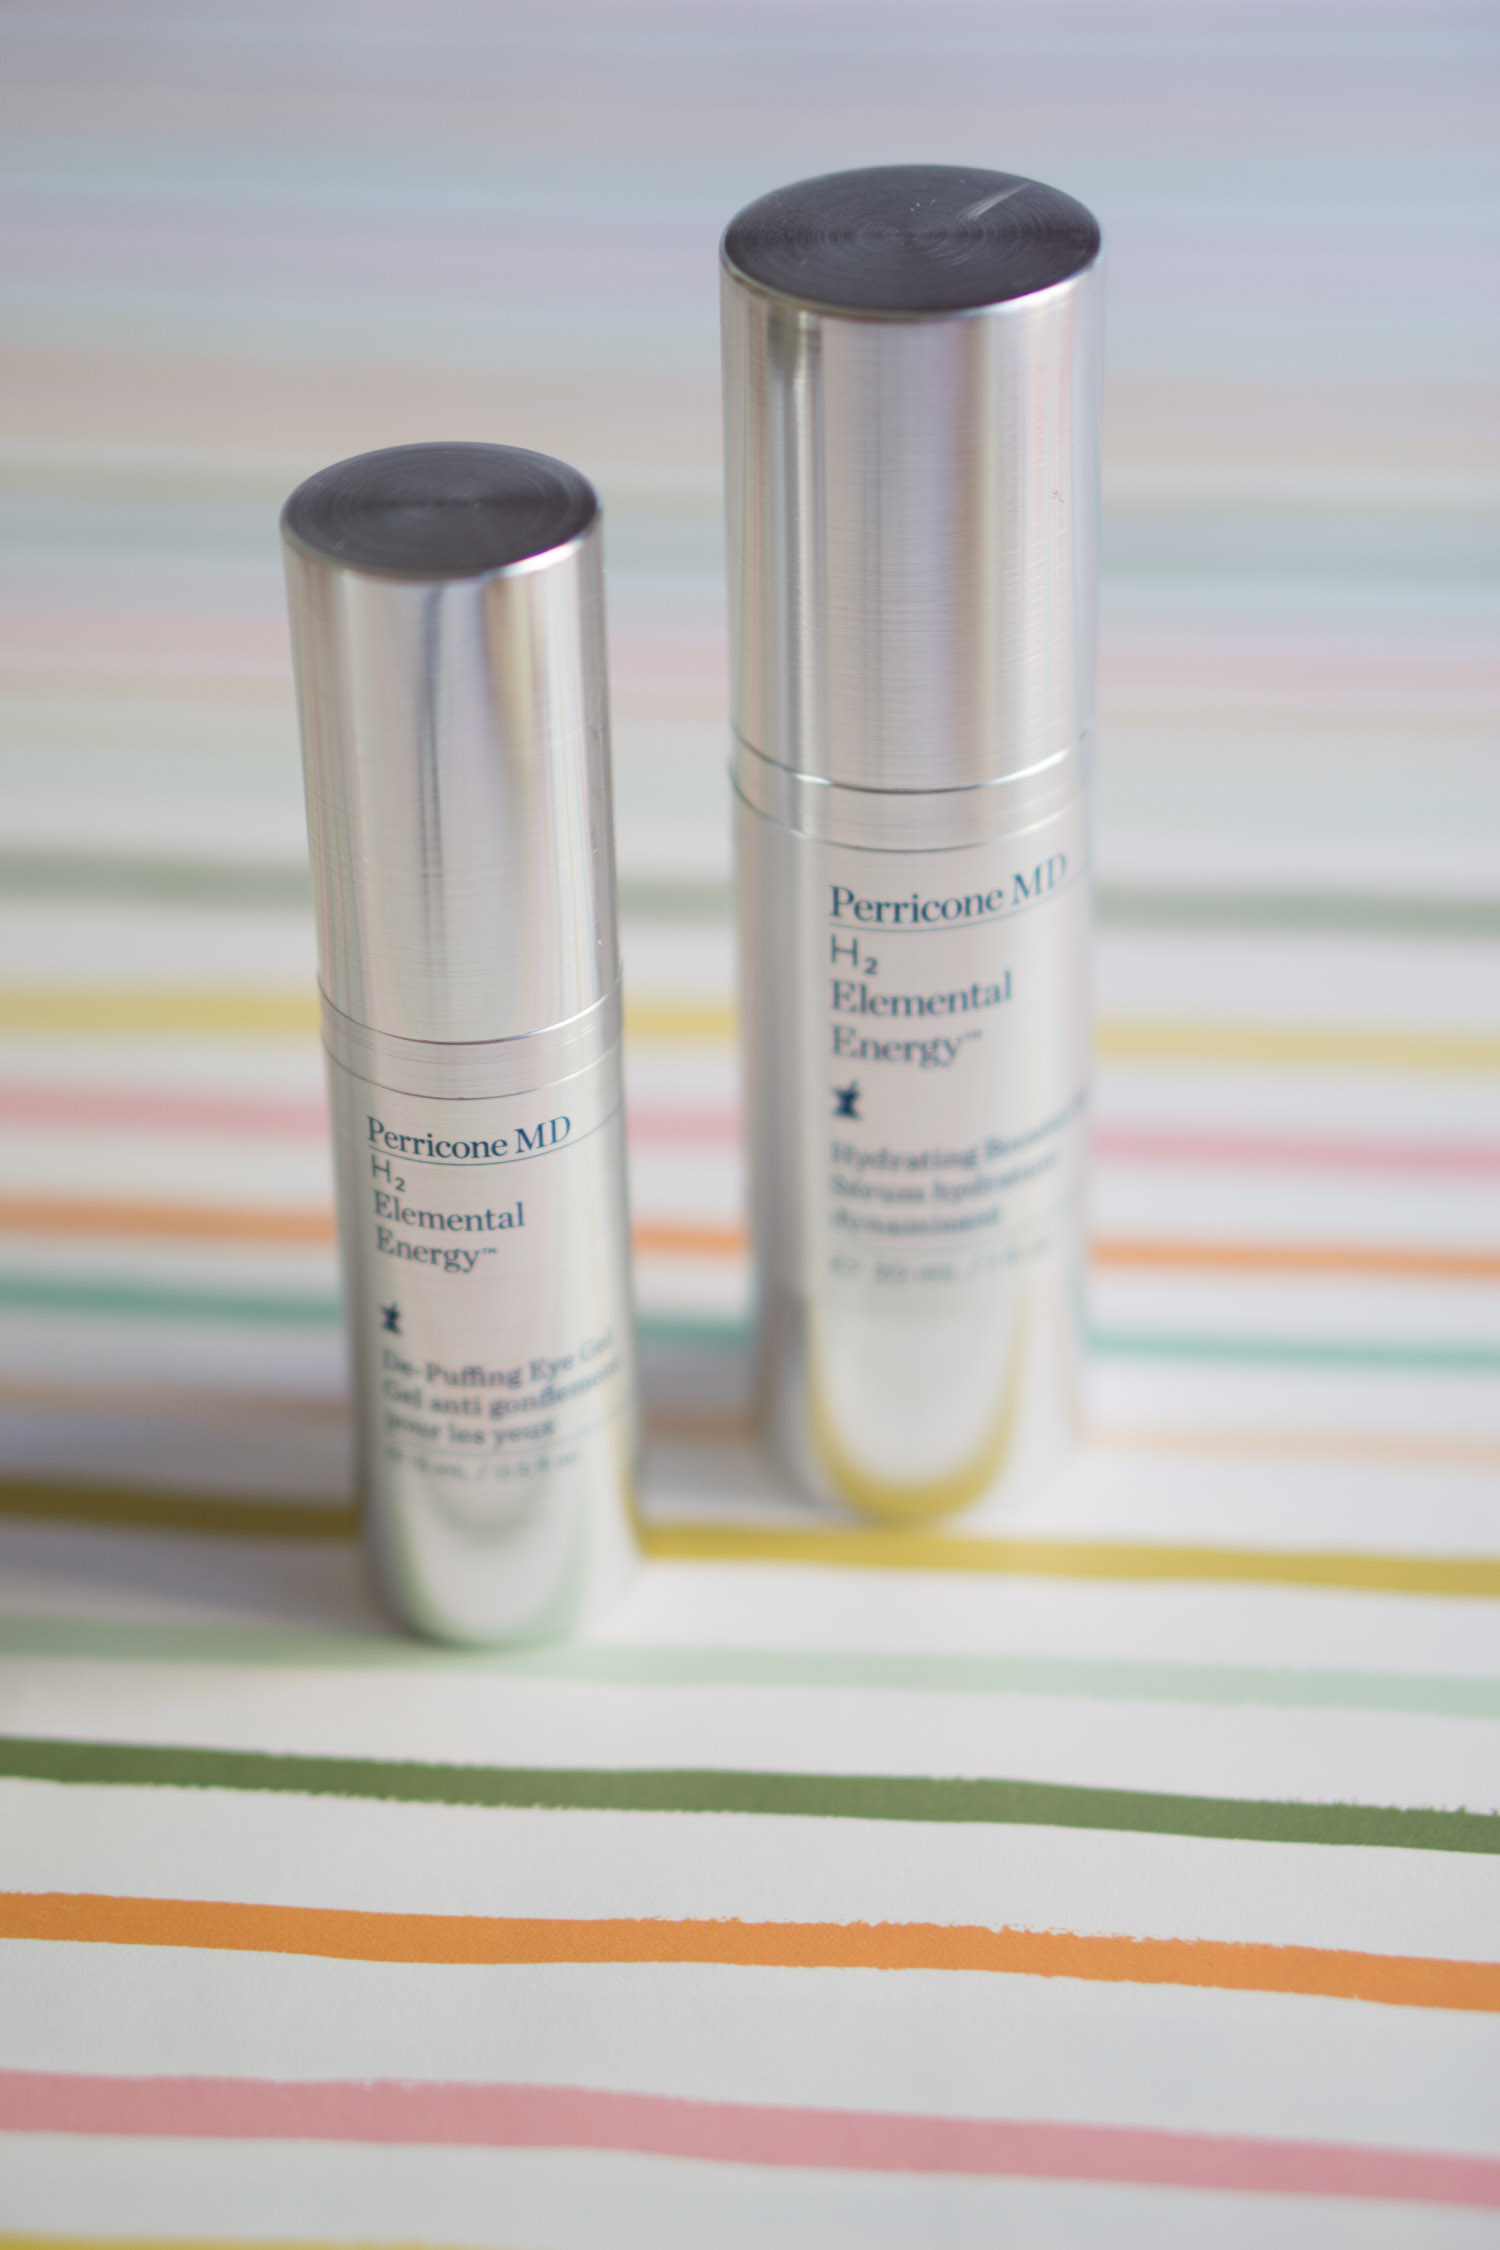 Perricone MD H2 Elemental Energy Hydrating Booster Serum review